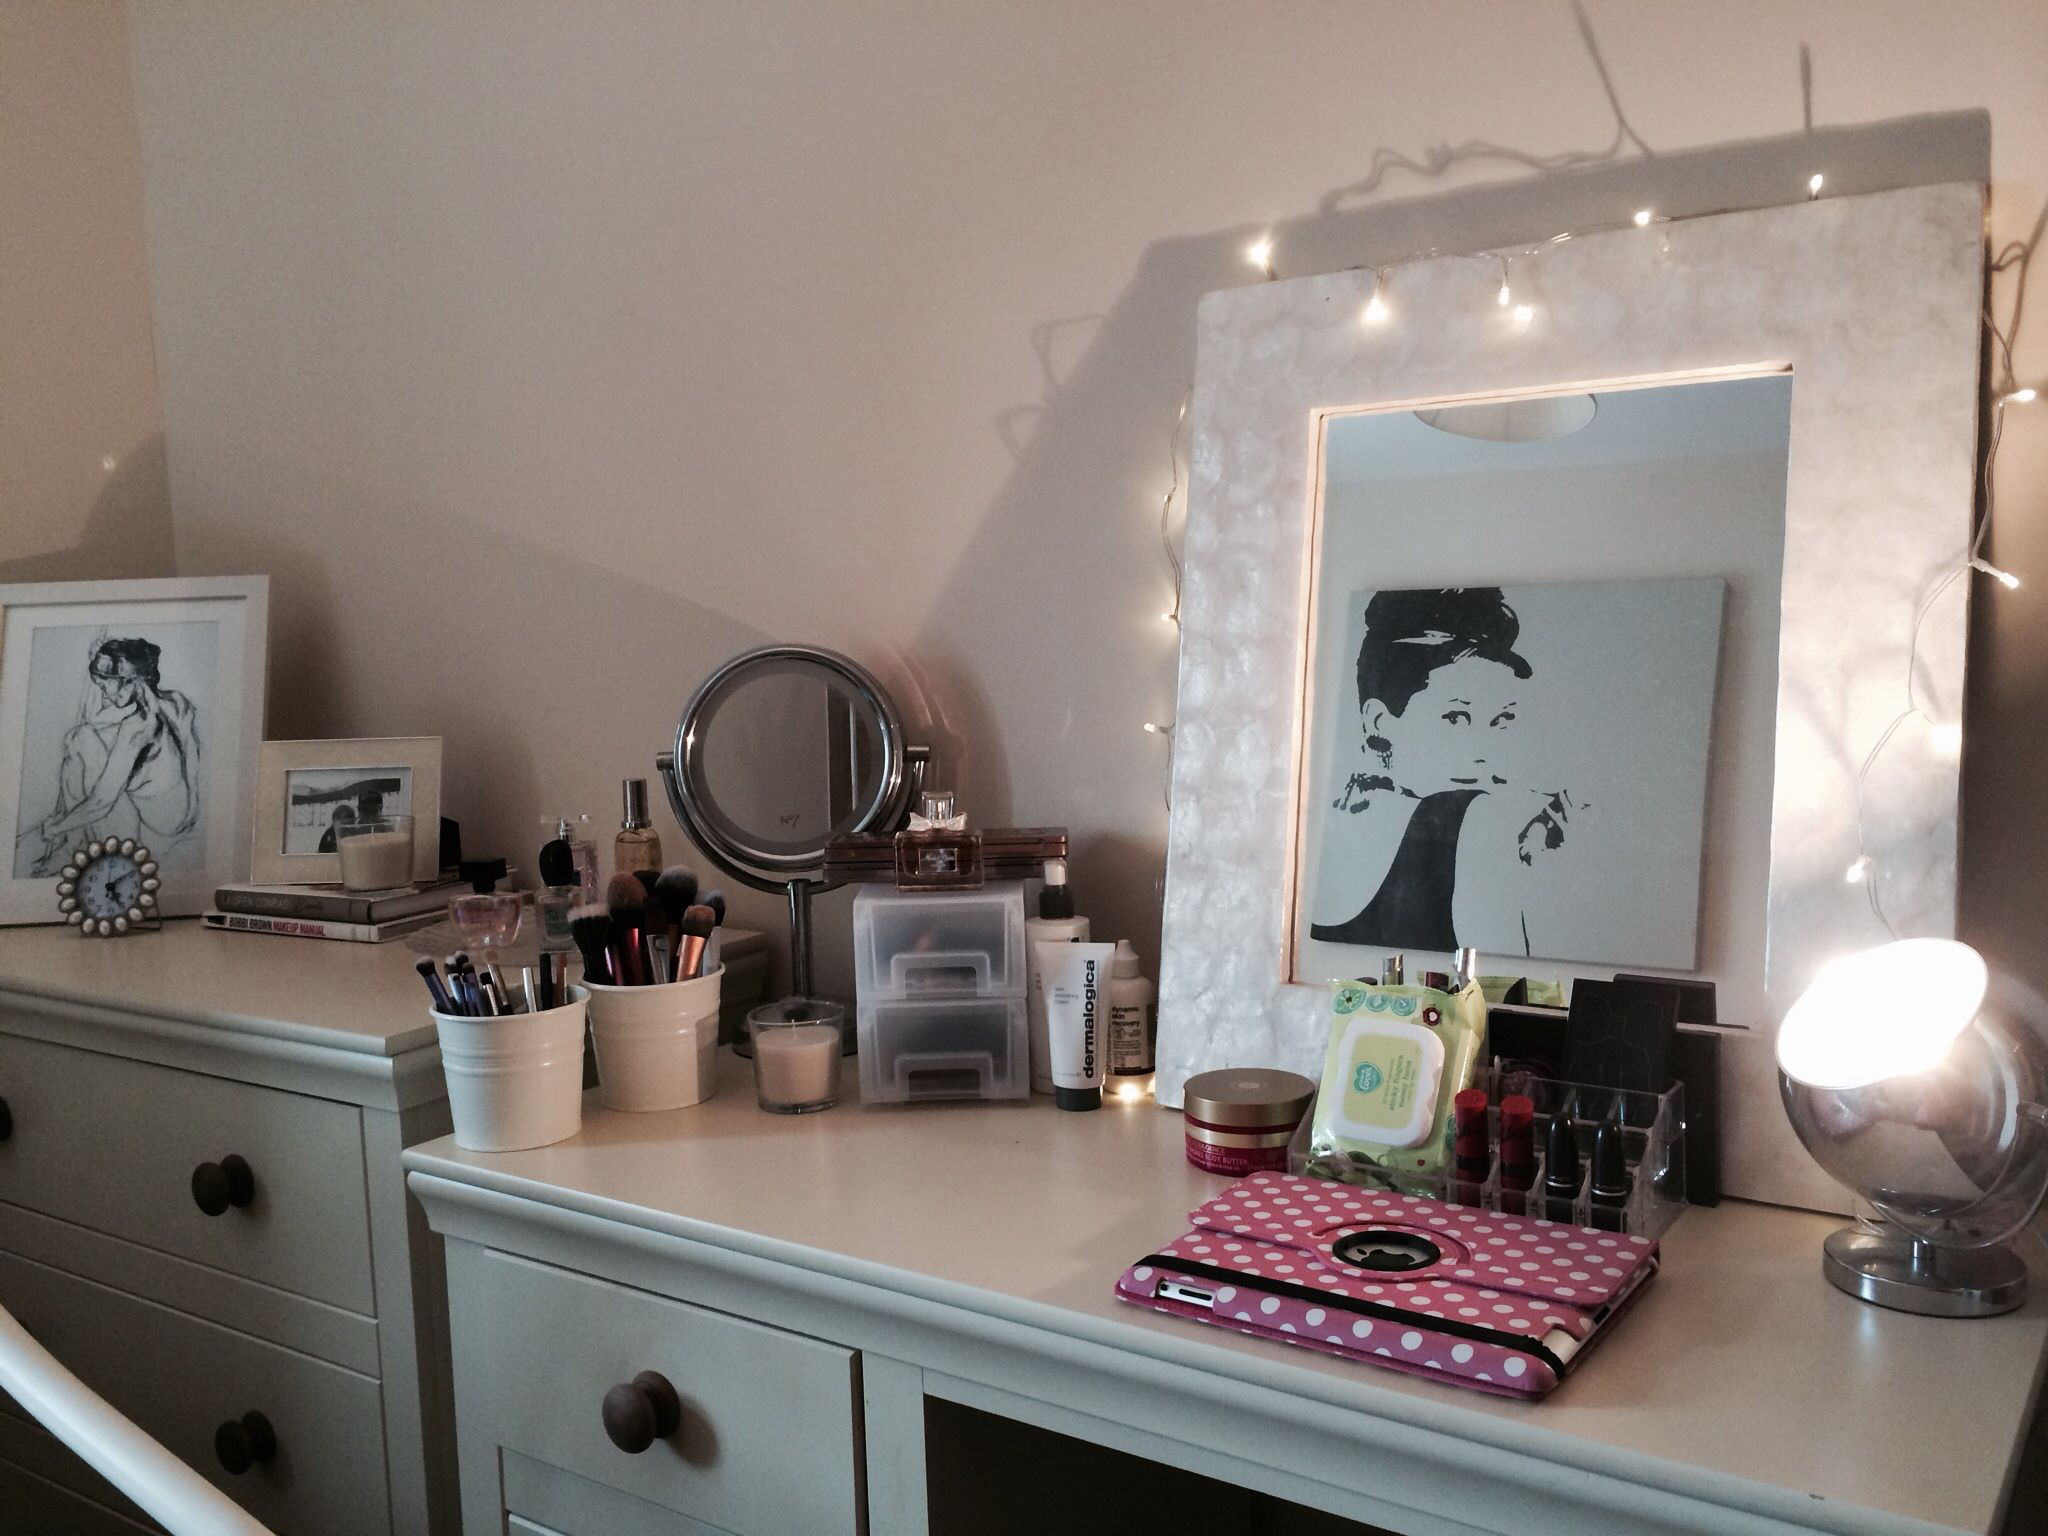 My blogging makeup station dressing table ideas home decor